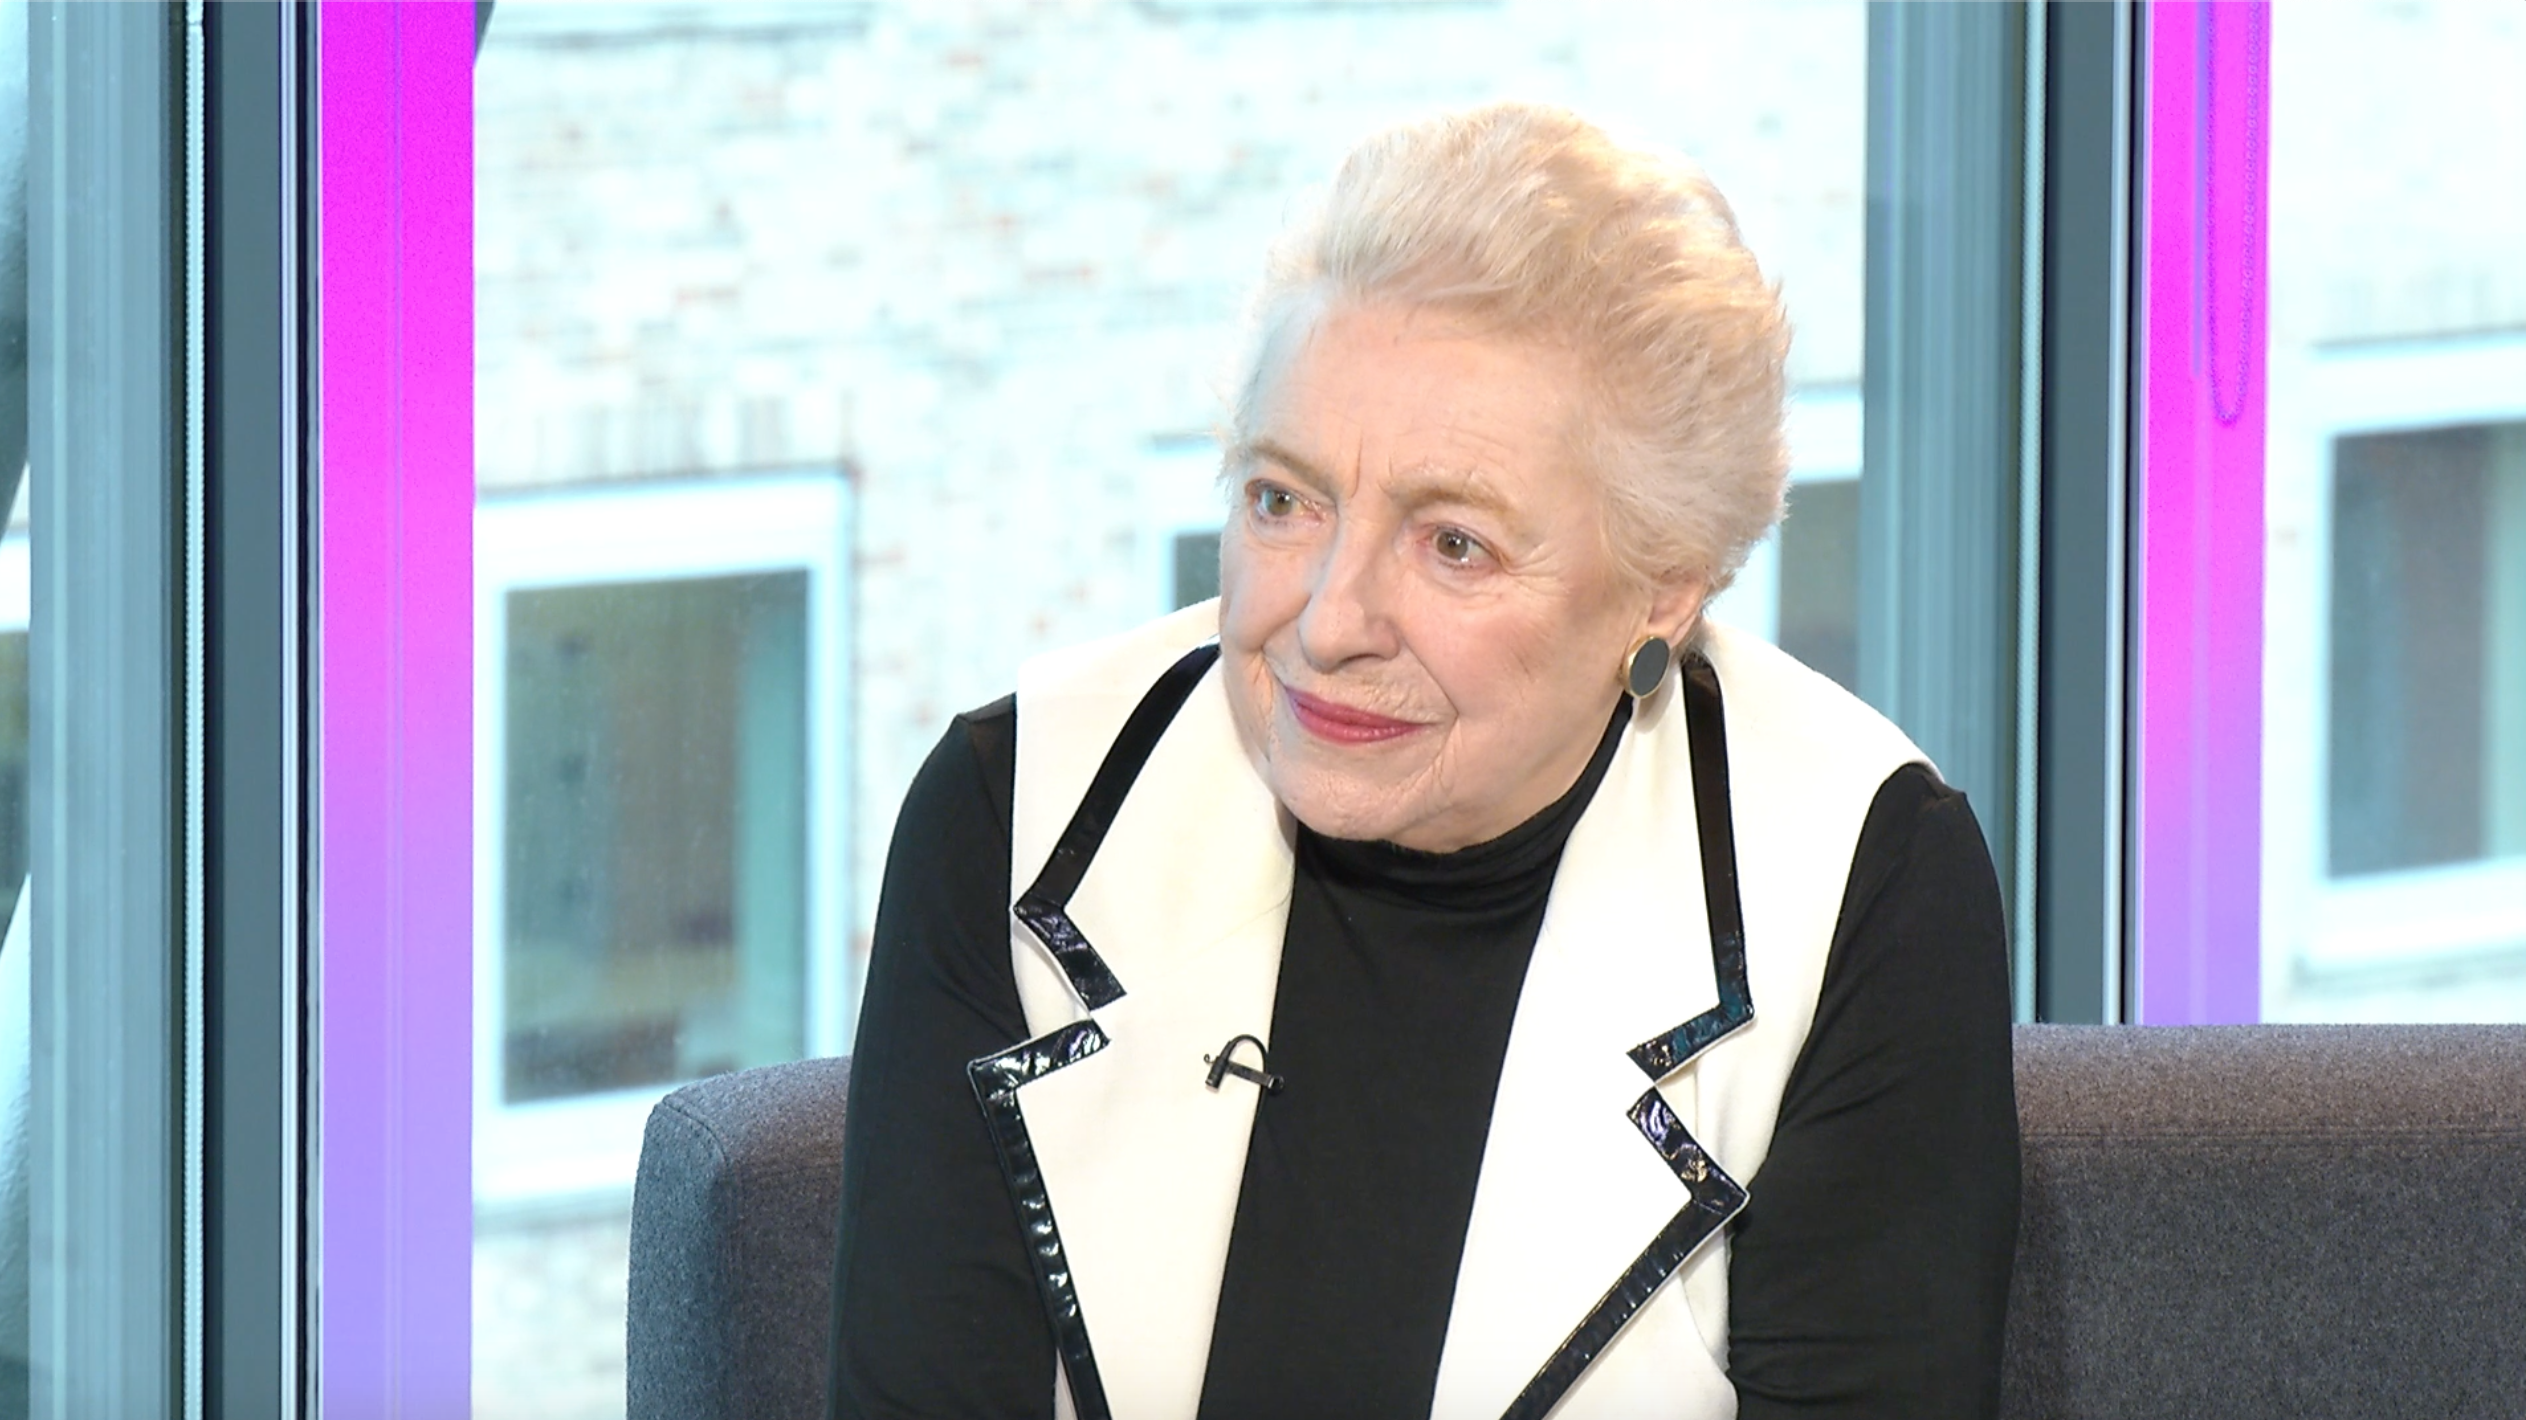 Tech pioneer Dame Stephanie Shirley on defying the glass ceiling to become a 'venture philanthropist'